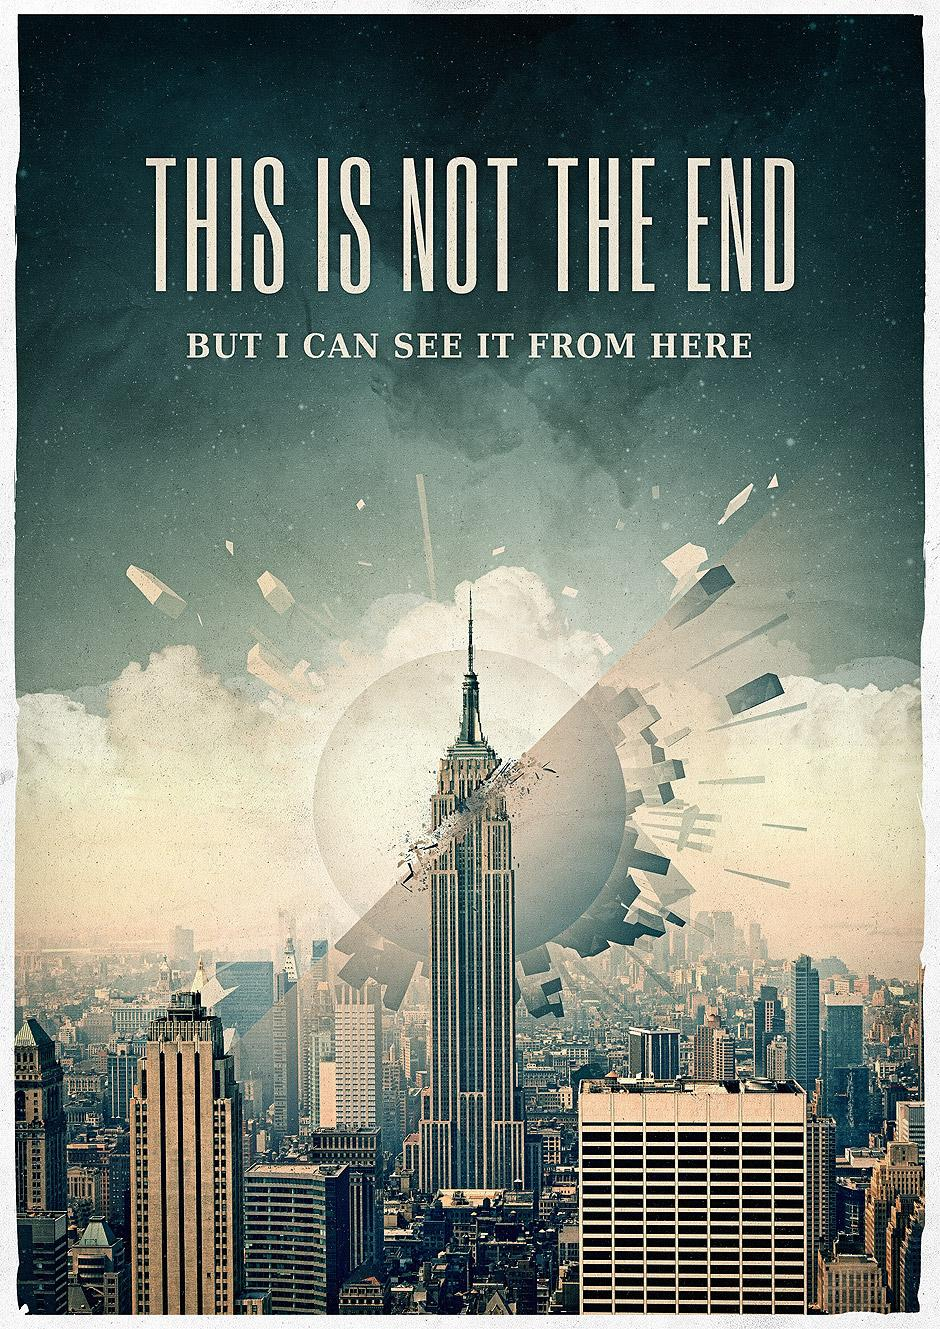 This is not the end. But I can see it from here.